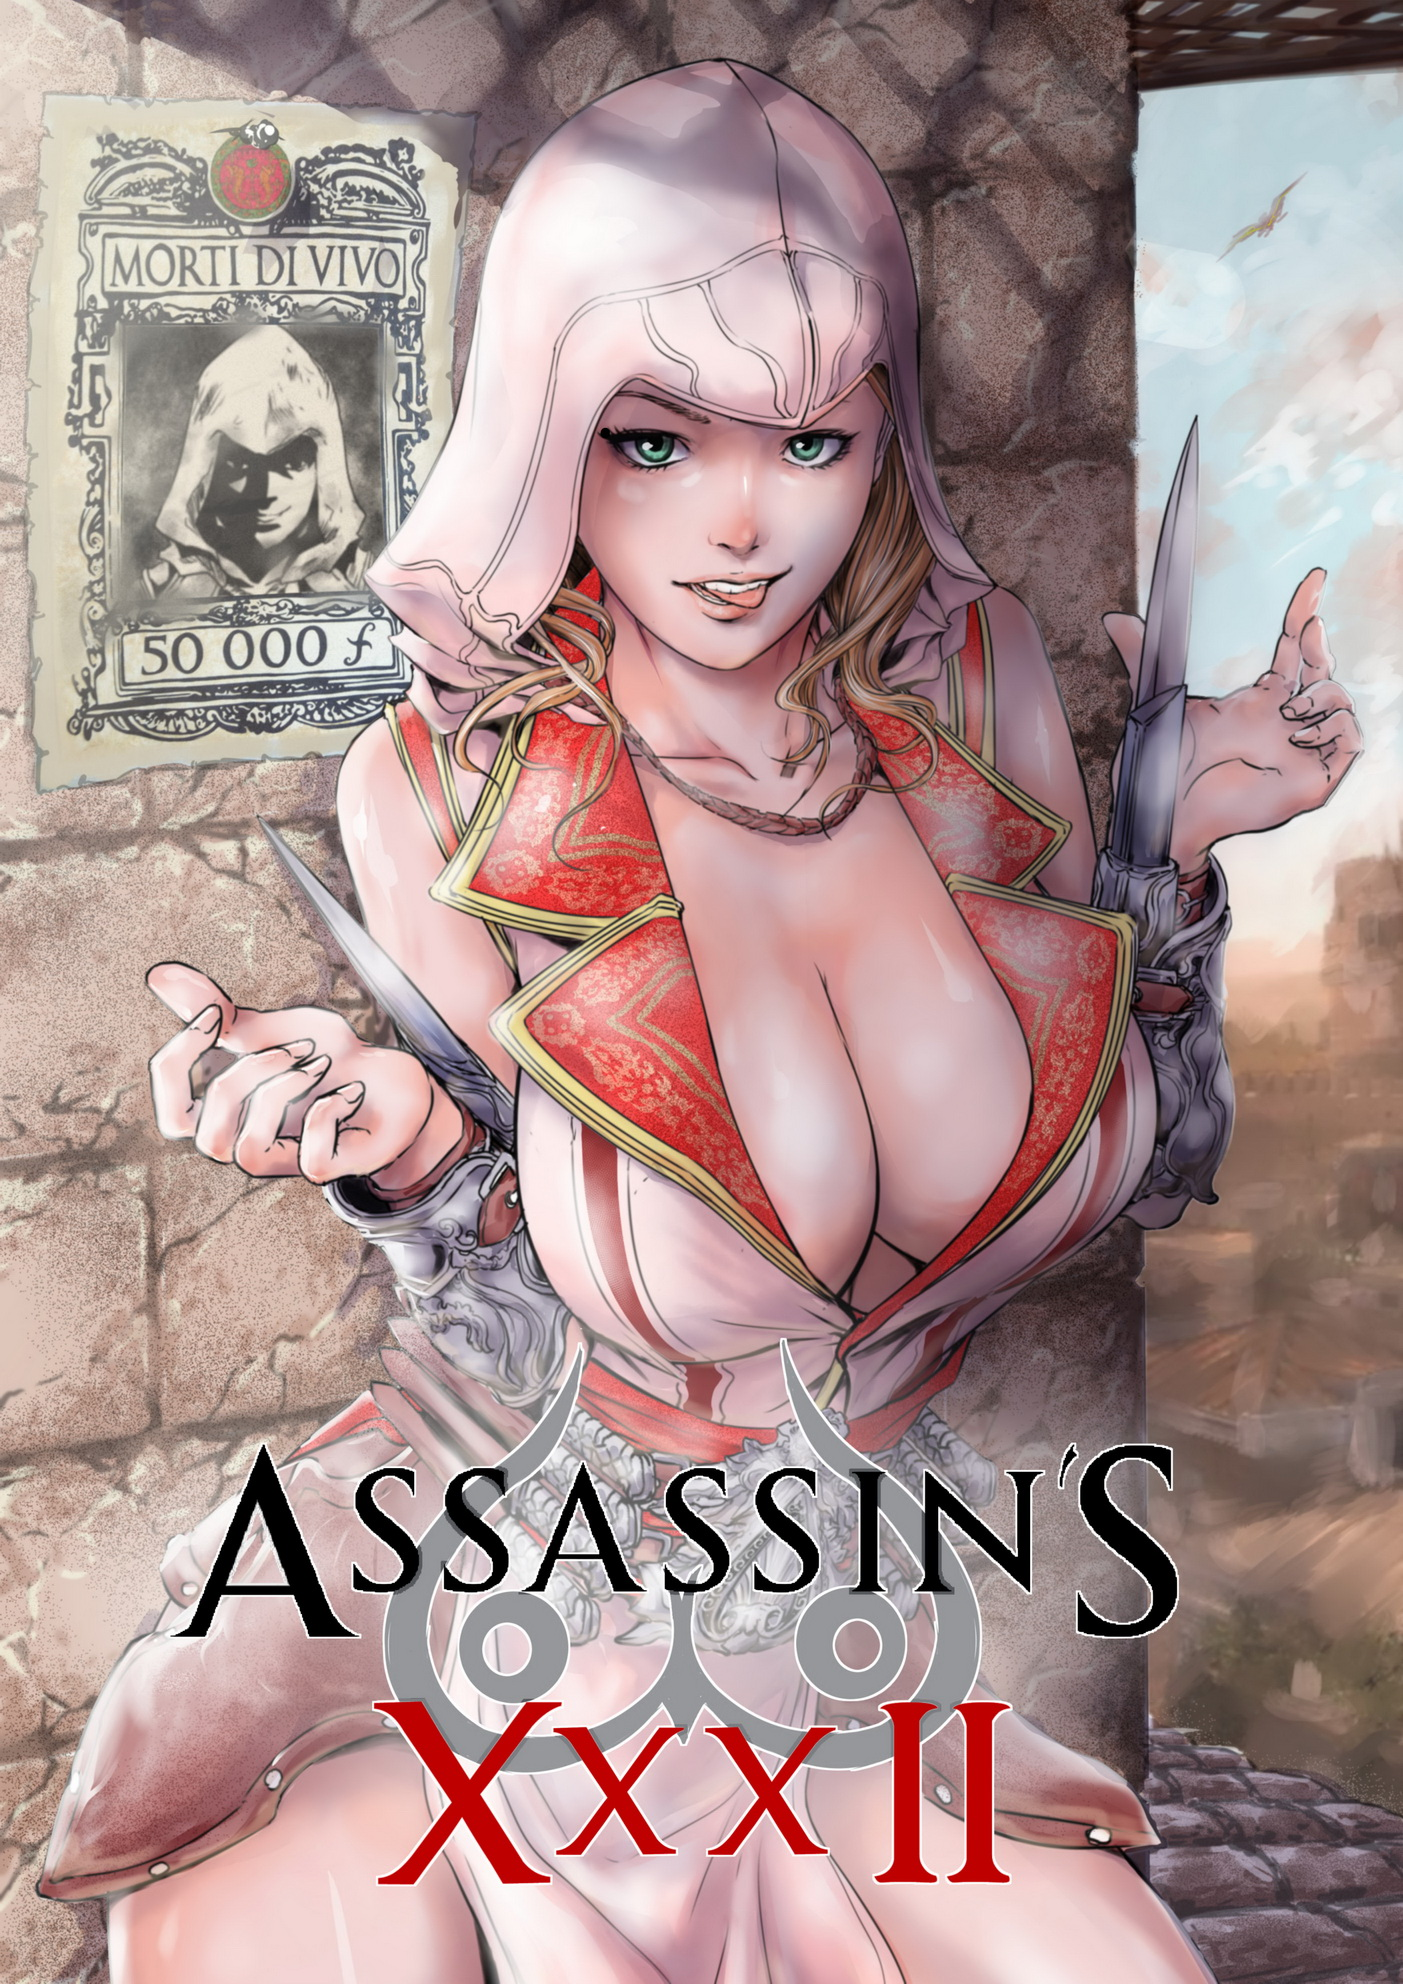 Assassin creed 4 image hentai sex clips